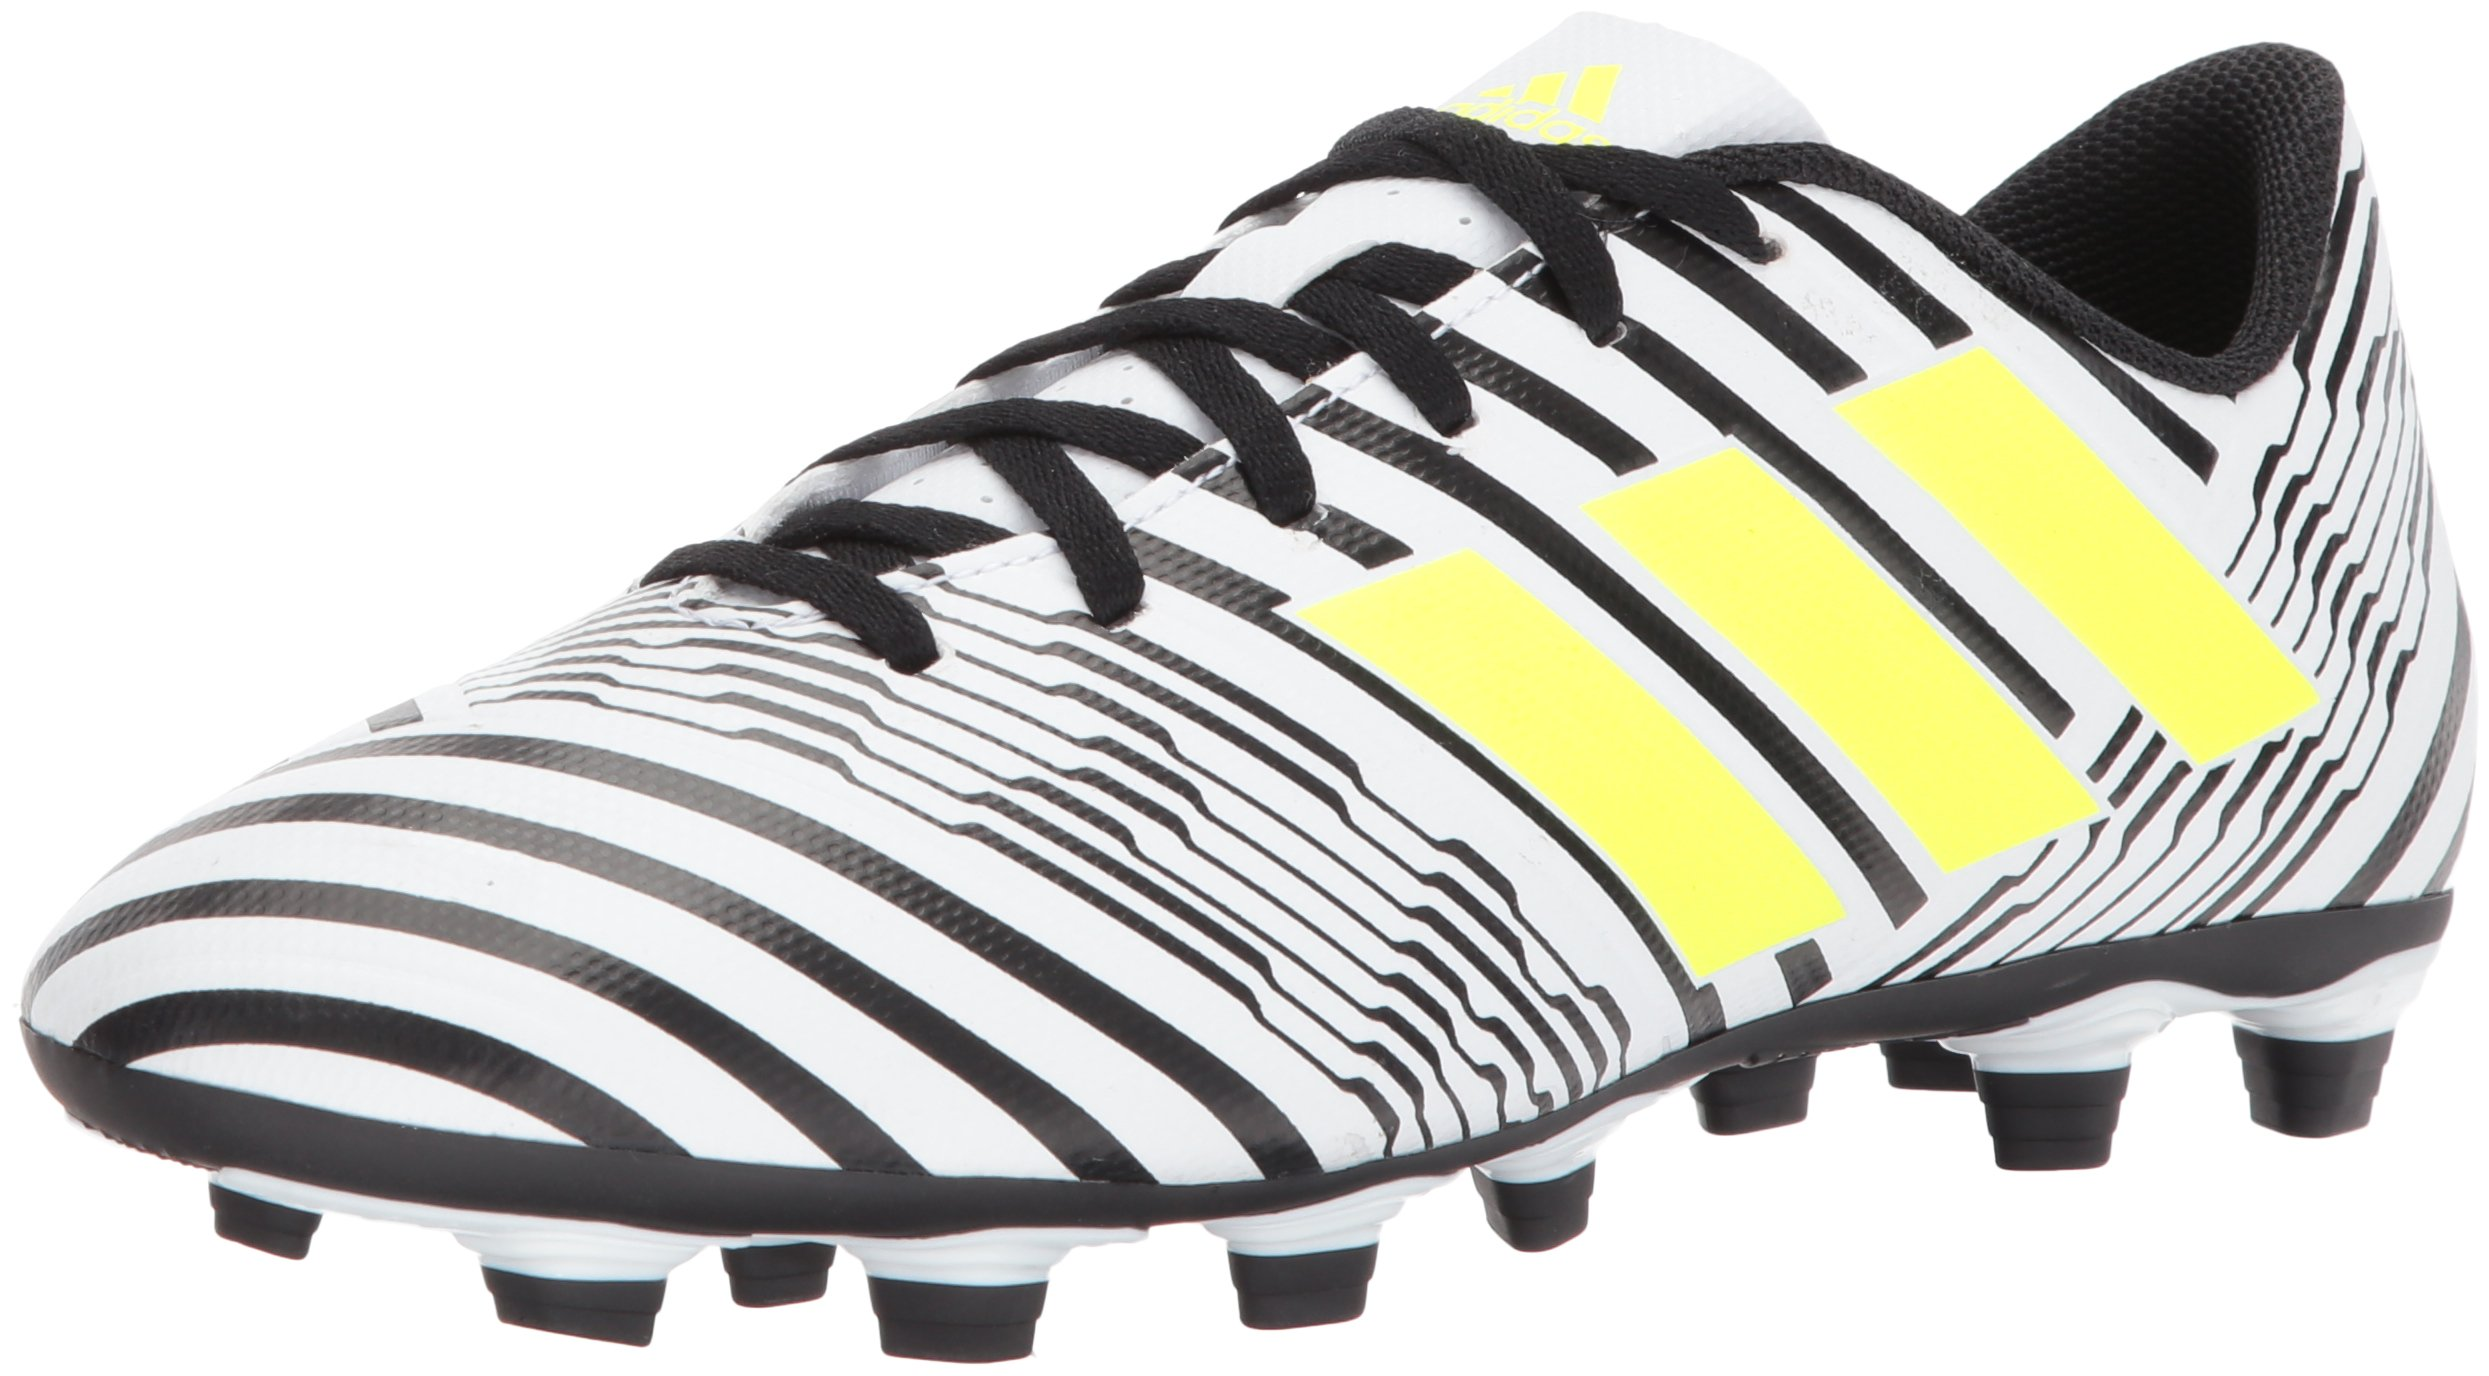 adidas Men's Nemeziz 17.4 FxG Soccer Shoe, White/Solar Yellow/Black, 7.5 Medium US by adidas